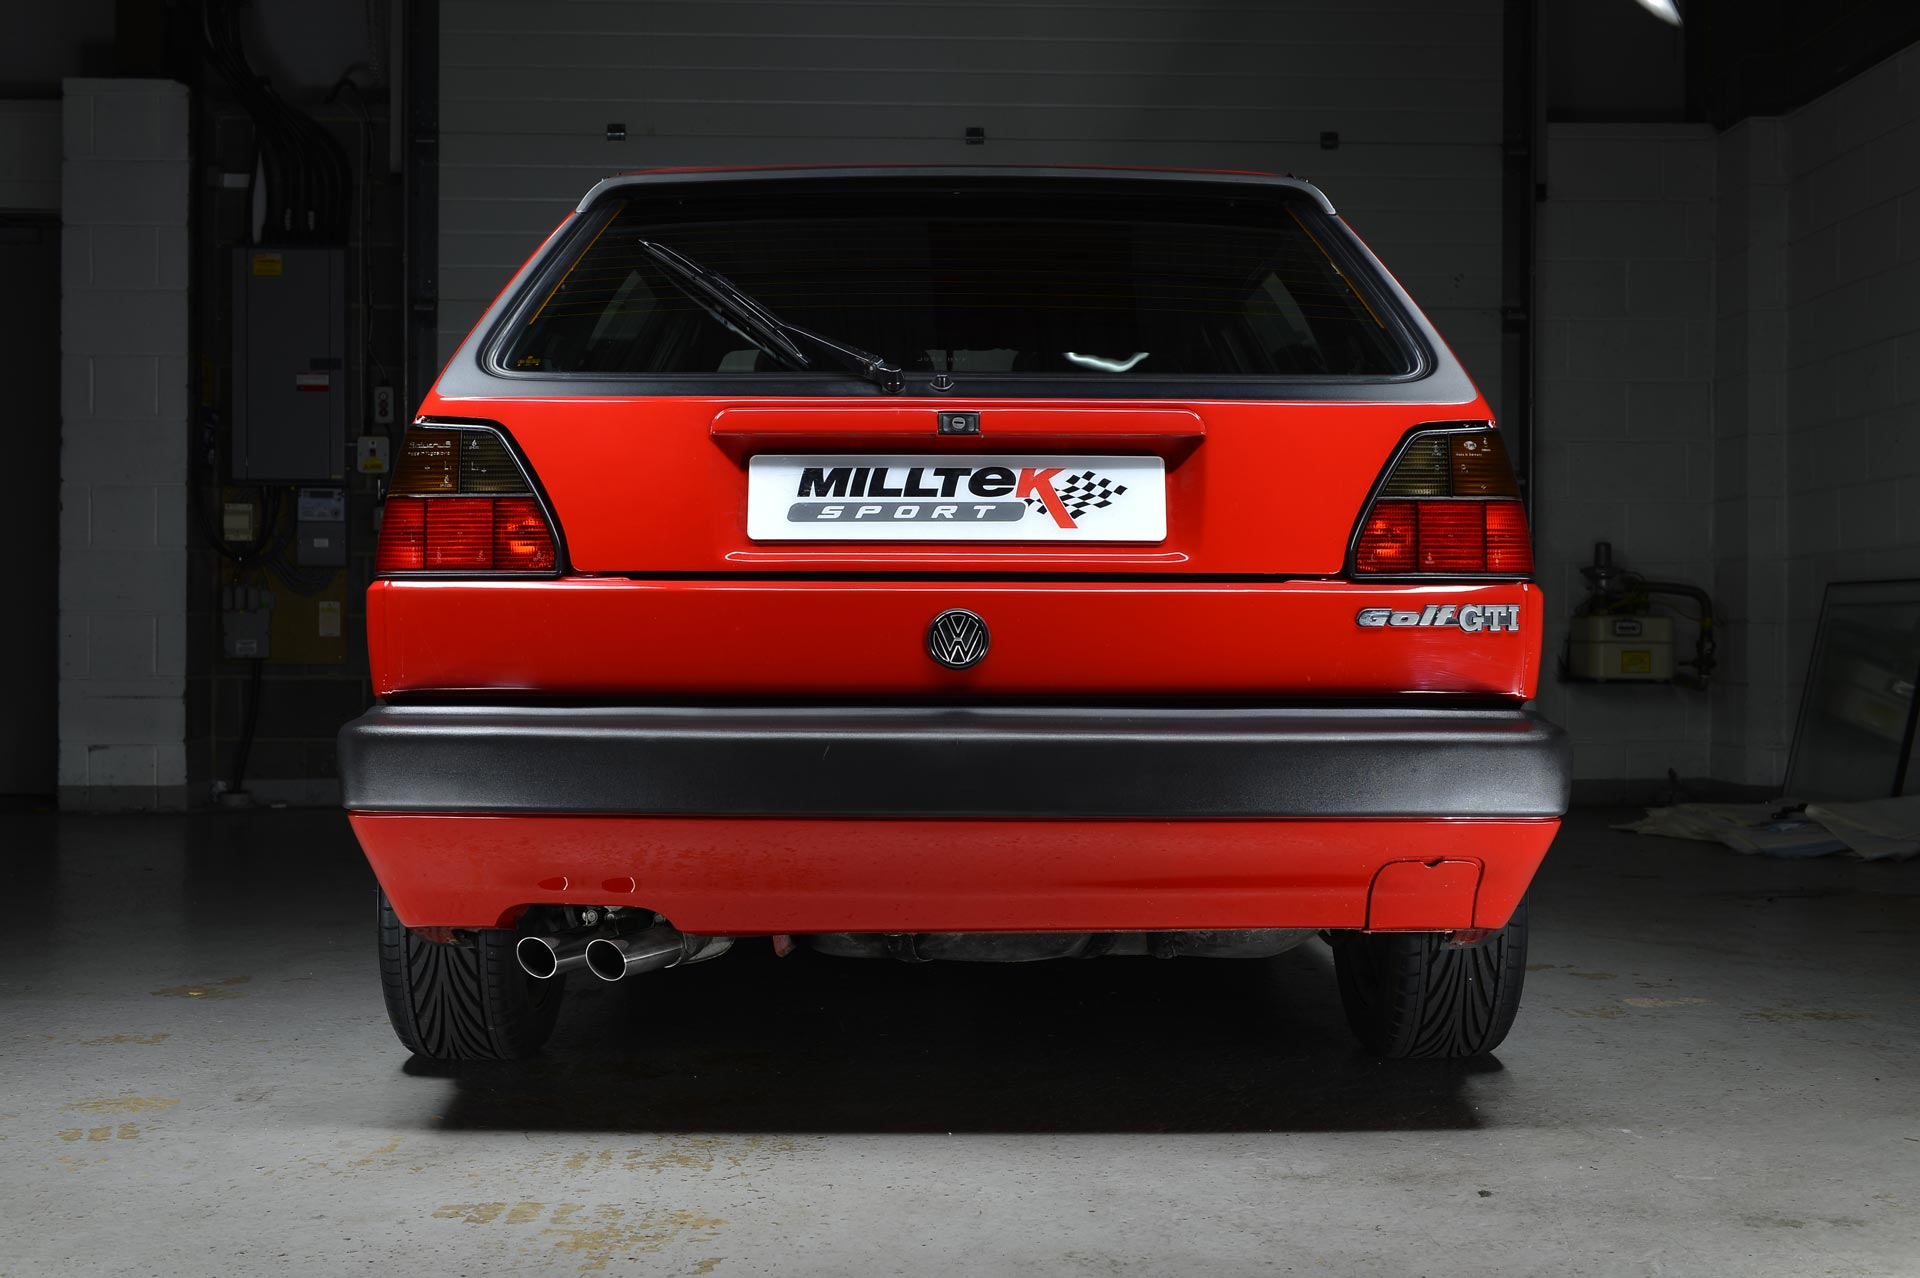 volkswagen golf gti mk2 8v performance exhaust system by milltek classic. Black Bedroom Furniture Sets. Home Design Ideas